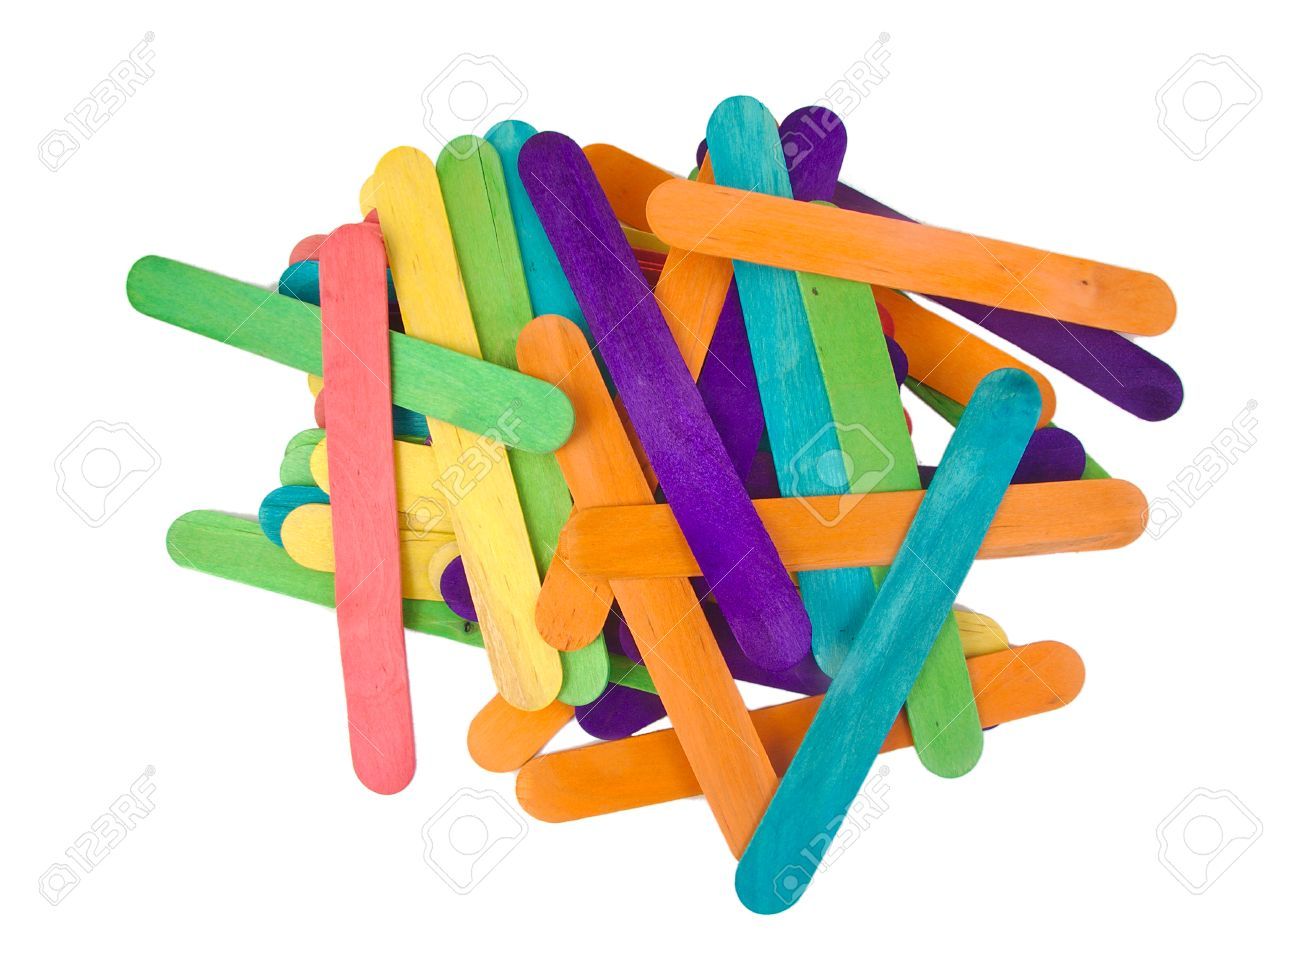 688 Popsicle free clipart.